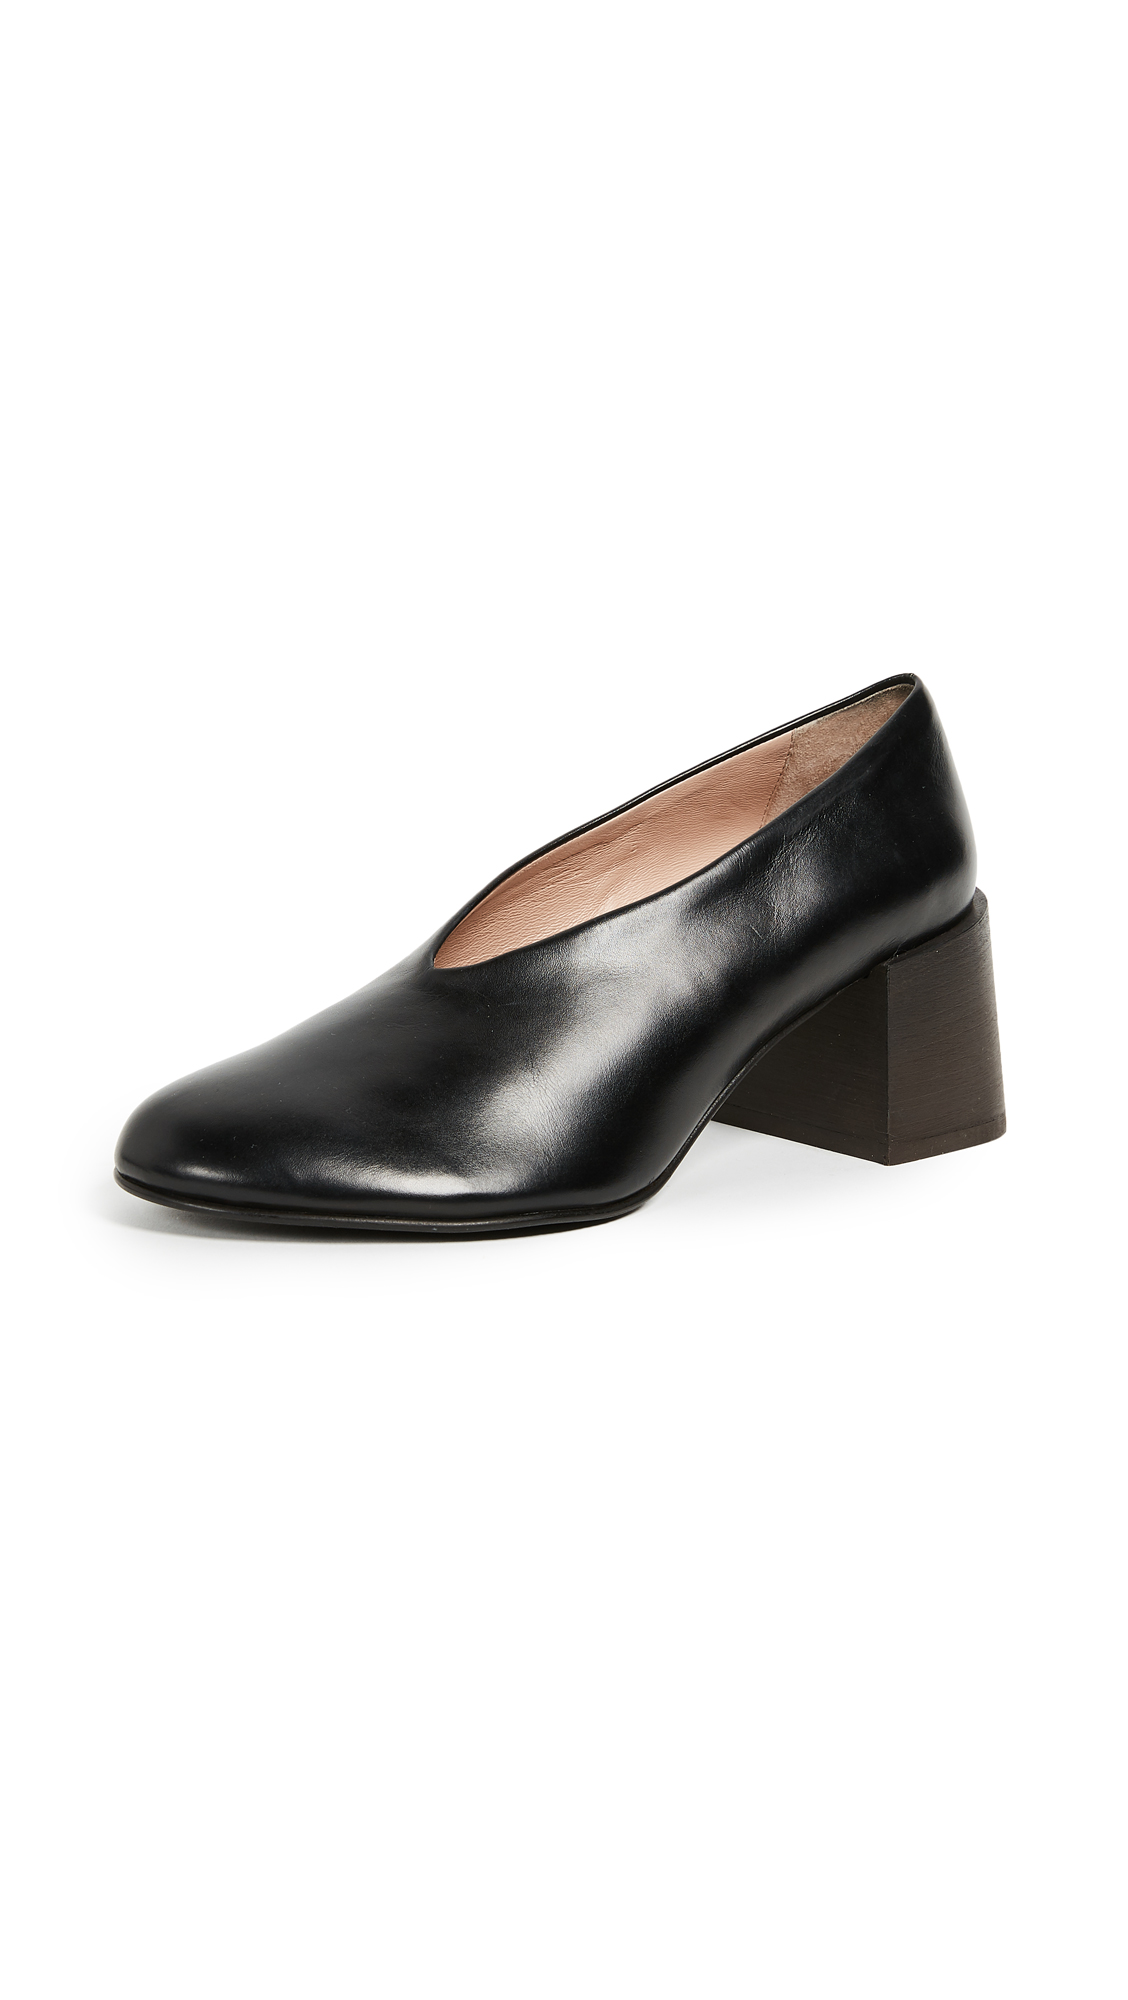 Acne Studios Sully Pumps - Black